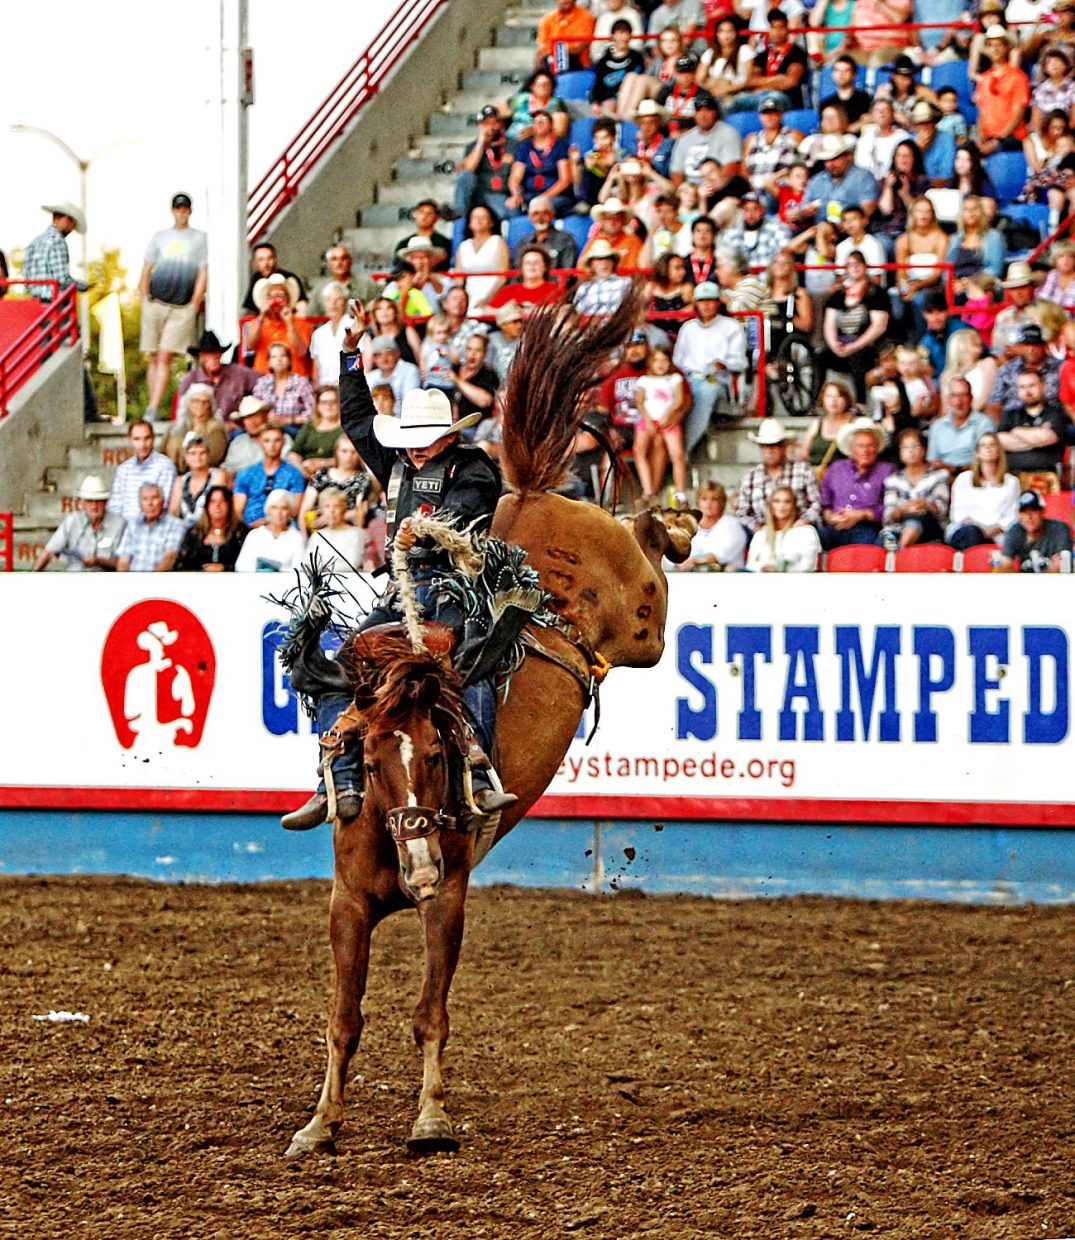 Utah saddle bronc cowboy Rusty Wright rode Ole Flame for a crowd-pleasing 87 points, which tied the Greeley Stampede's arena record and earned Wright his second consecutive saddle bronc title in two tries at the historic Colorado rodeo.